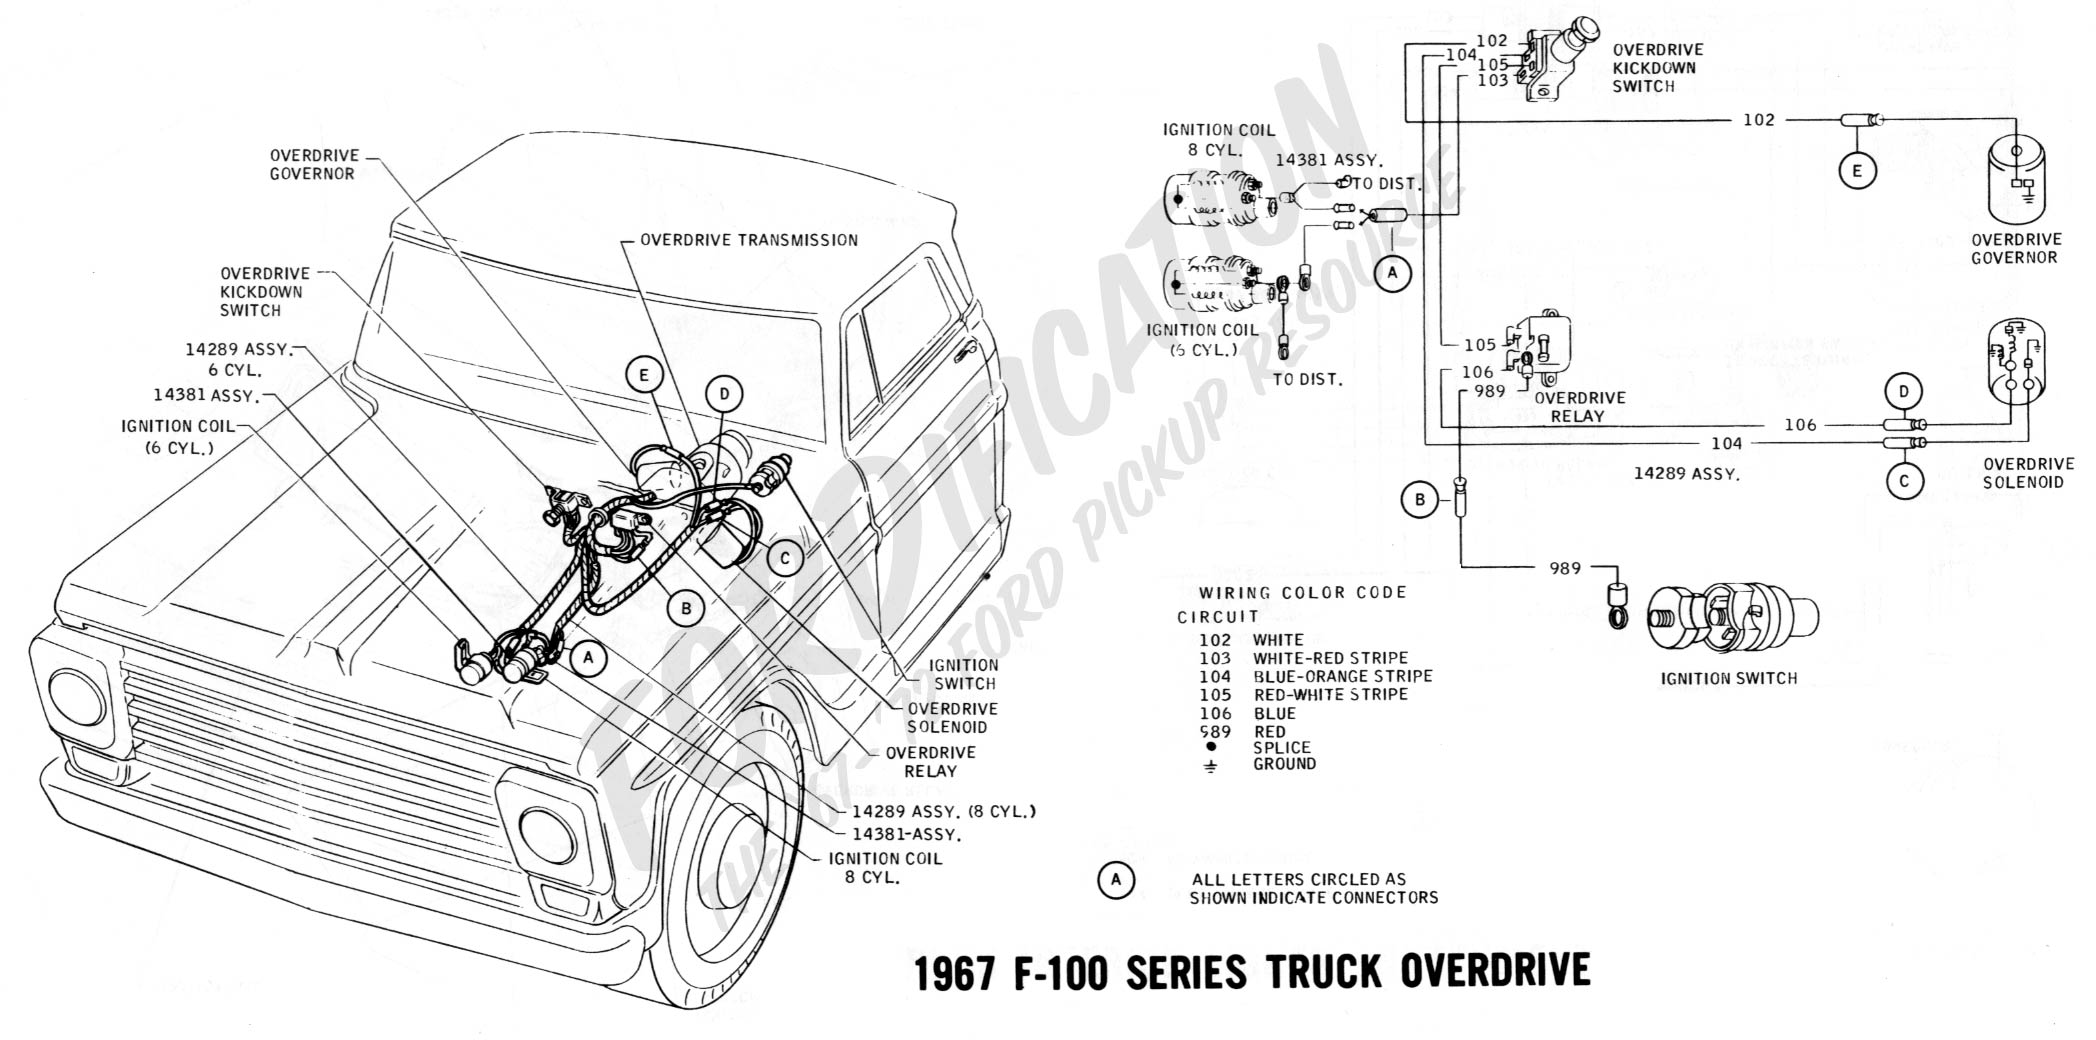 [SCHEMATICS_48IS]  23E2FB 1967 Ford F250 Wiring Diagram | Wiring Library | Free Download Lace Sensor Wiring Schematics |  | Wiring Library